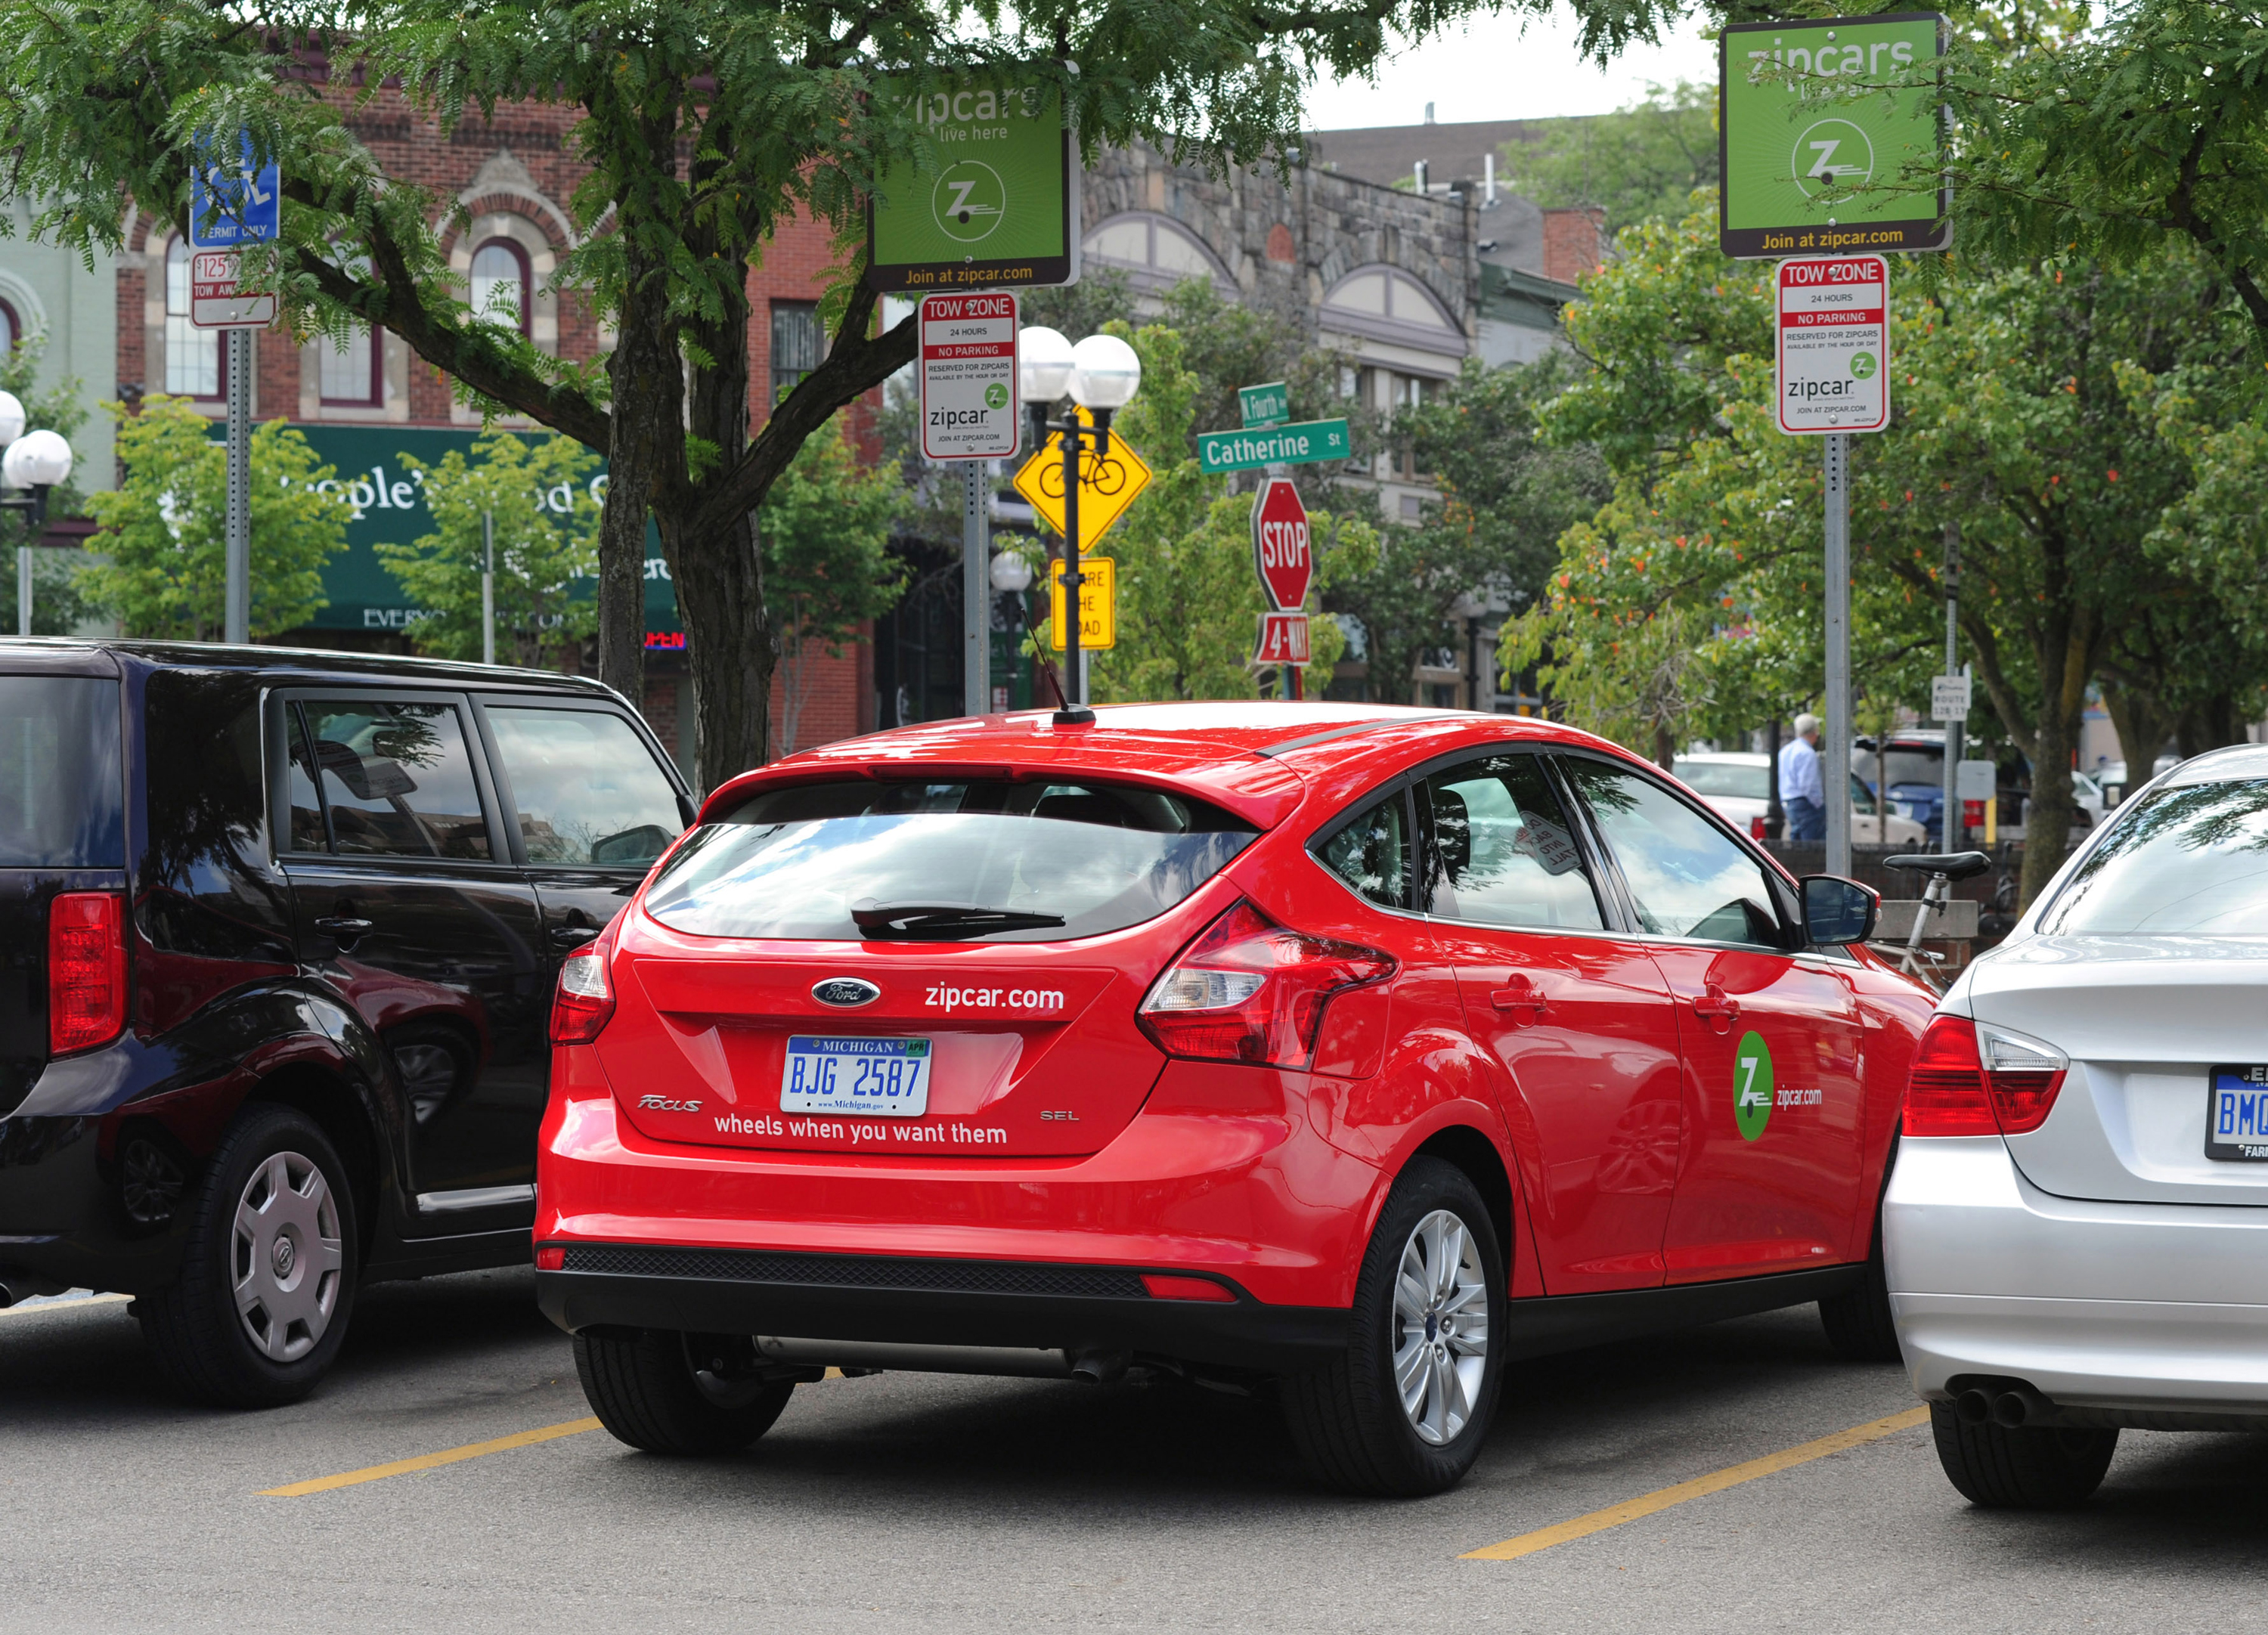 Ford Zipcar Bring Future Of Transportation To Newest Generation Of